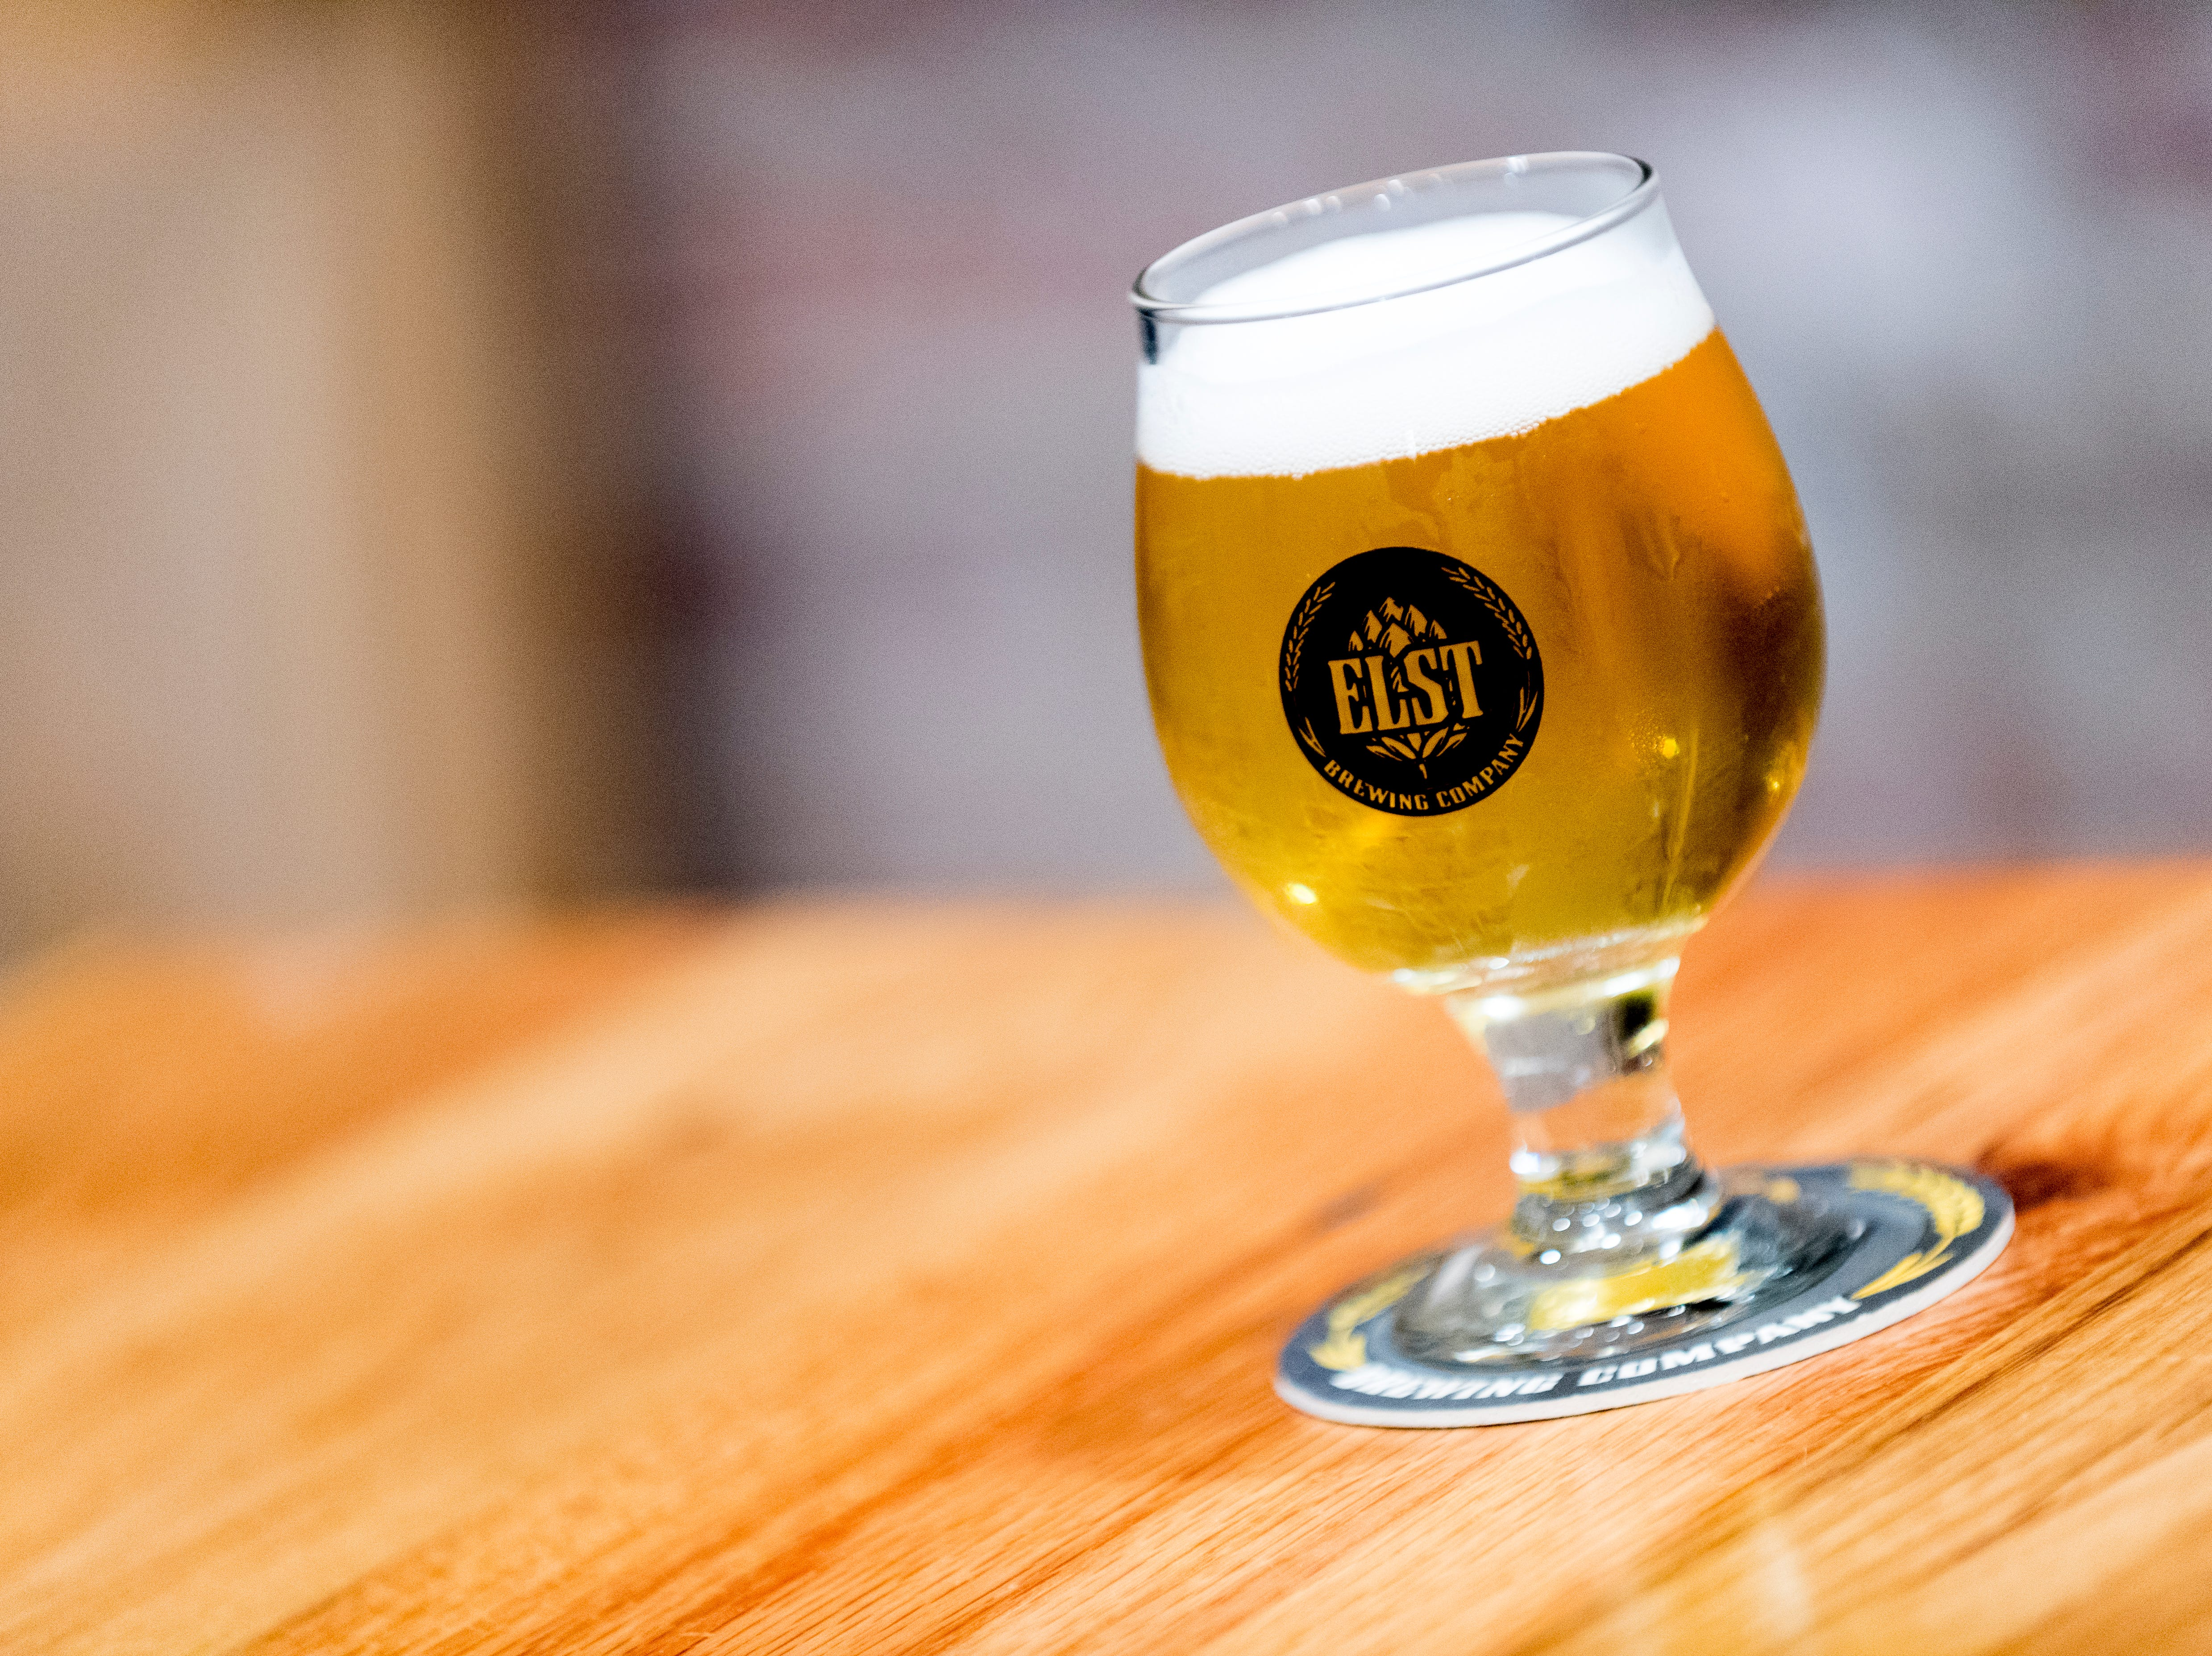 A goblet of Elst Blonde Ale at Elst Brewing Company on 2417 N Central St. in Knoxville, Tennessee on Thursday, November 1, 2018. Elst plans to open its door beginning next year.